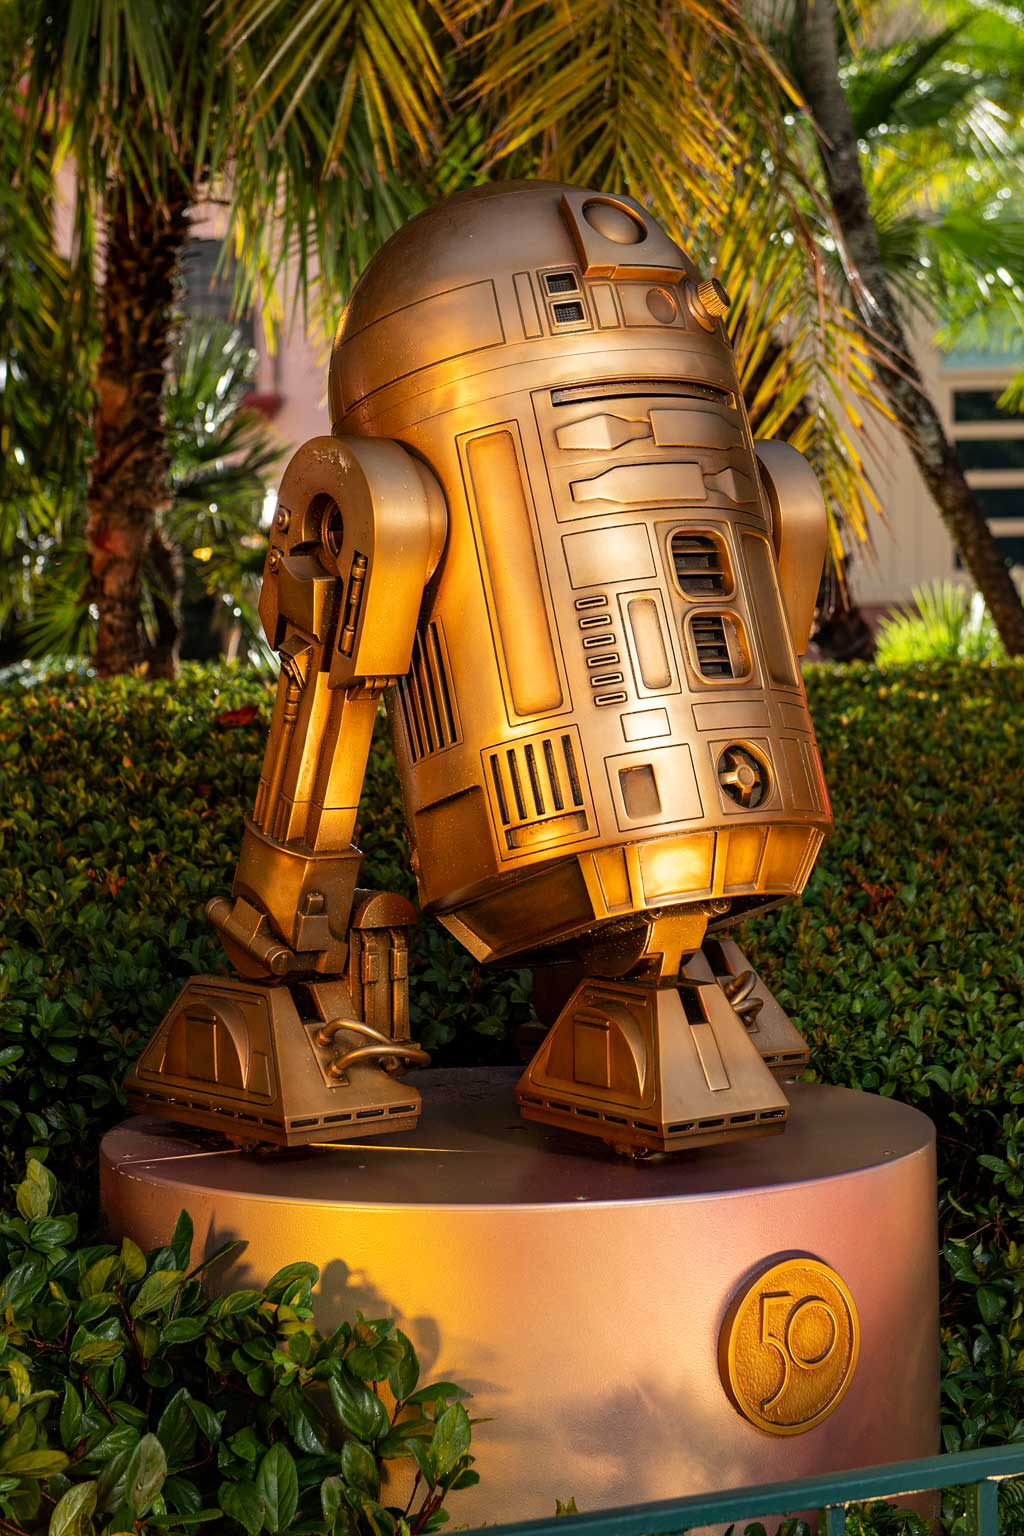 """R2-D2 at Disney's Hollywood Studios is one of the """"Disney Fab 50 Character Collection"""" sculptures appearing in all four Walt Disney World Resort theme parks in Lake Buena Vista, Fla., as part of """"The World's Most Magical Celebration,"""" beginning Oct. 1, 2021, in honor of the resort's 50th anniversary. (David Roark, photographer)"""